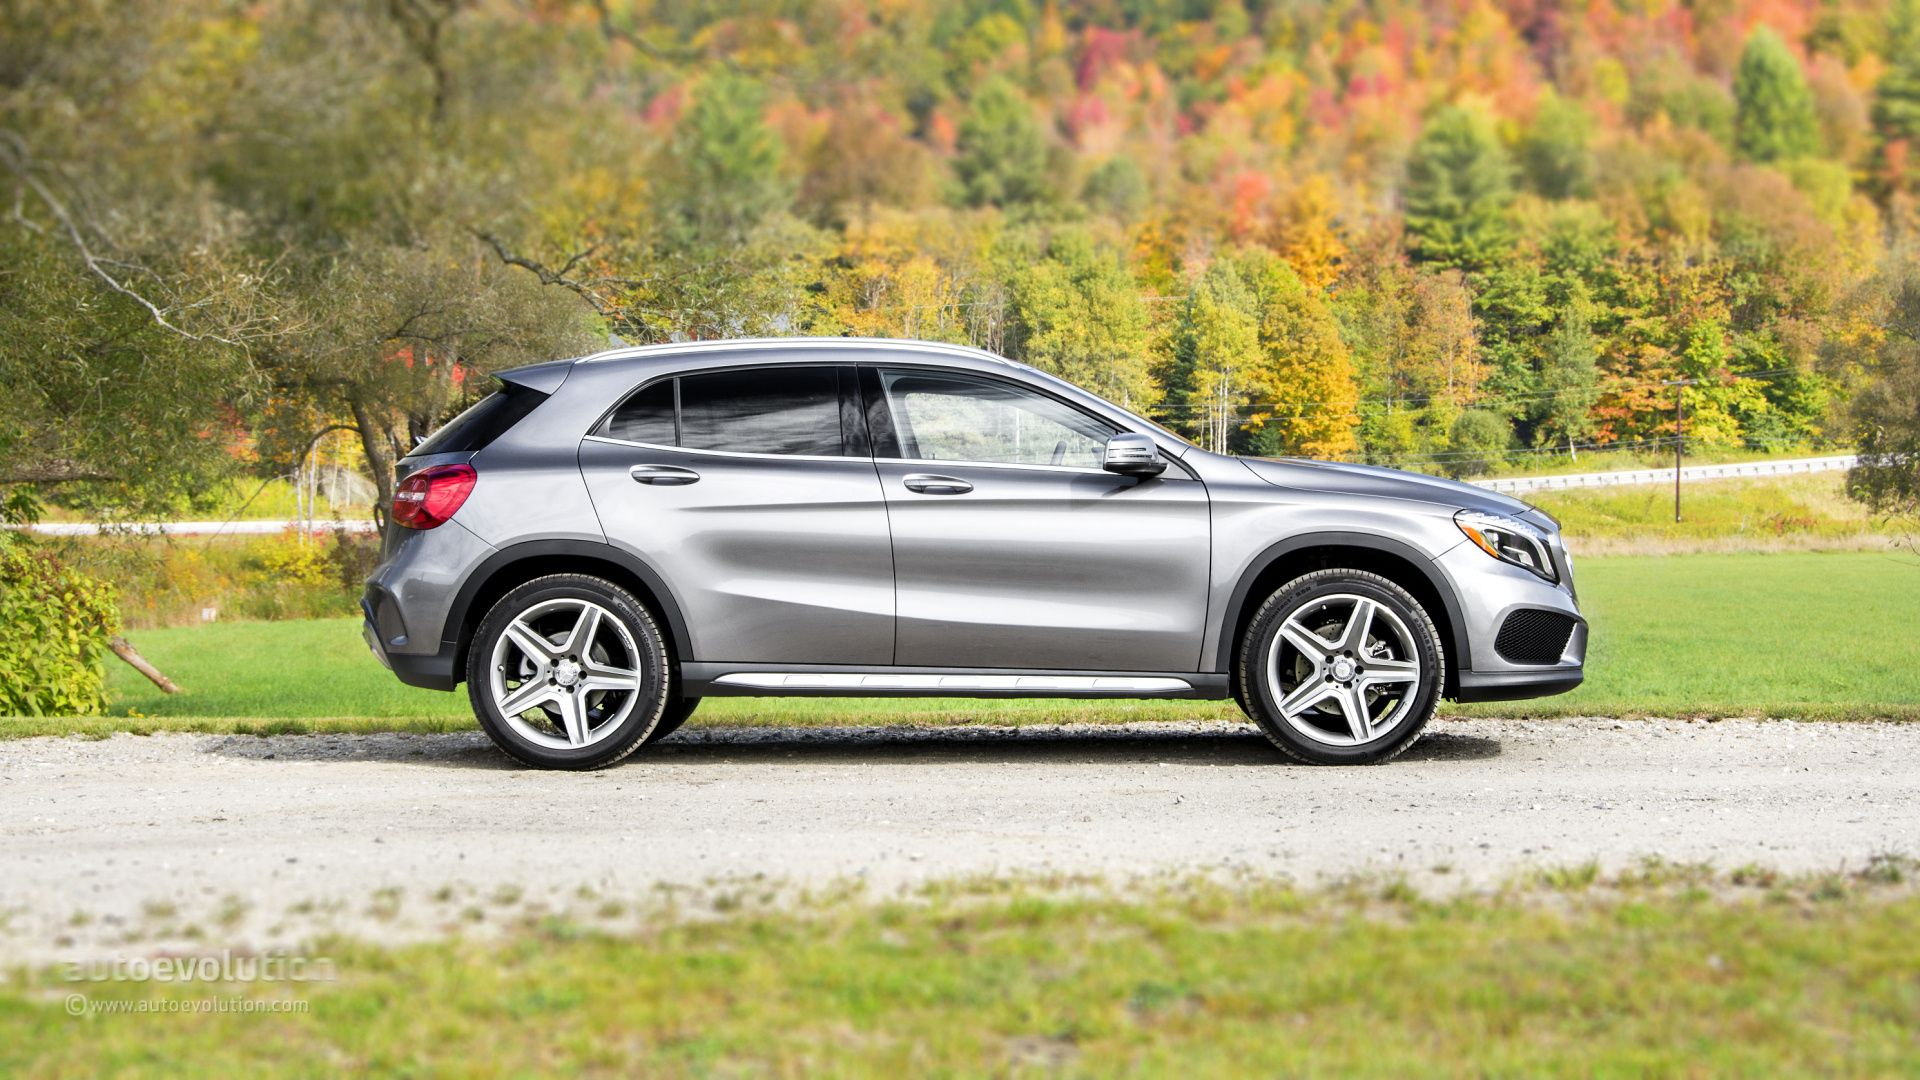 2015 MERCEDESBENZ GLA250 4Matic, GLA45 AMG review